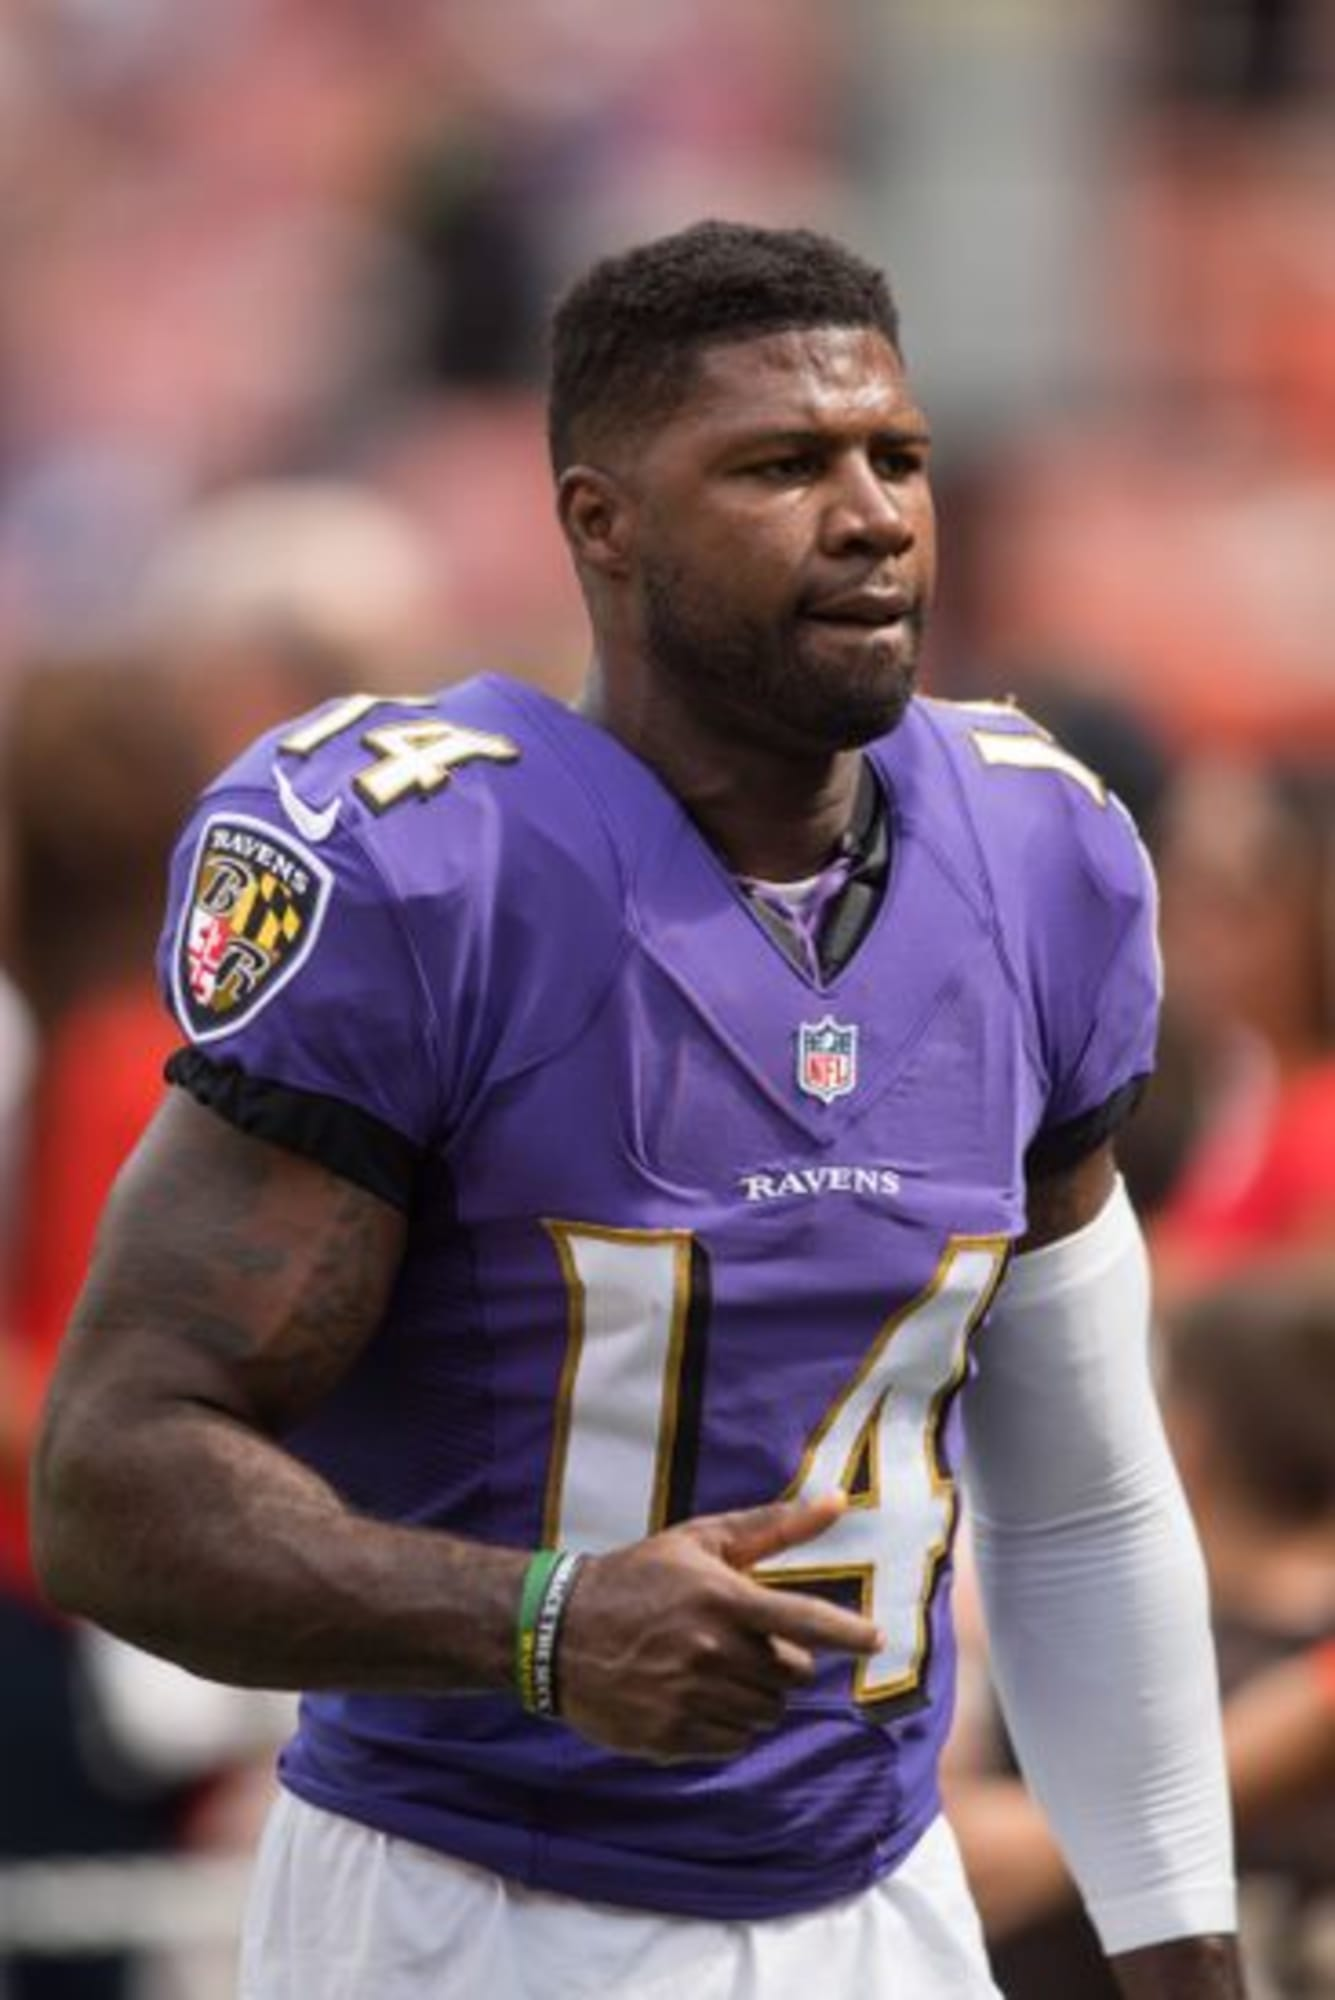 Seahawks Sign Devin Hester Ahead of Wild Card Game